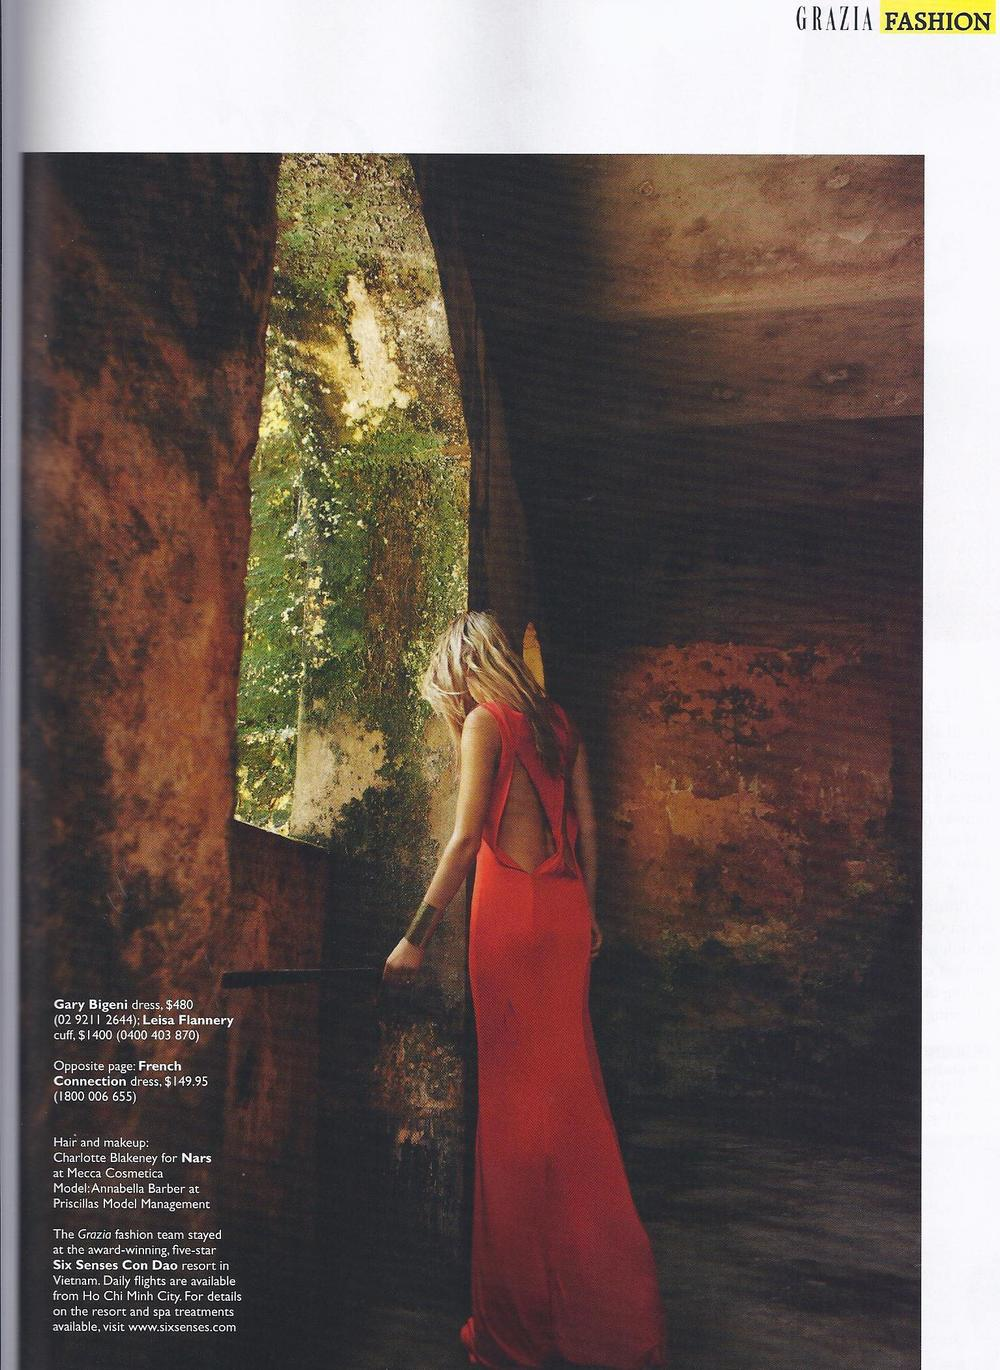 Grazia November 7, 2011 featuring the Queen of the Nile cuff.jpg